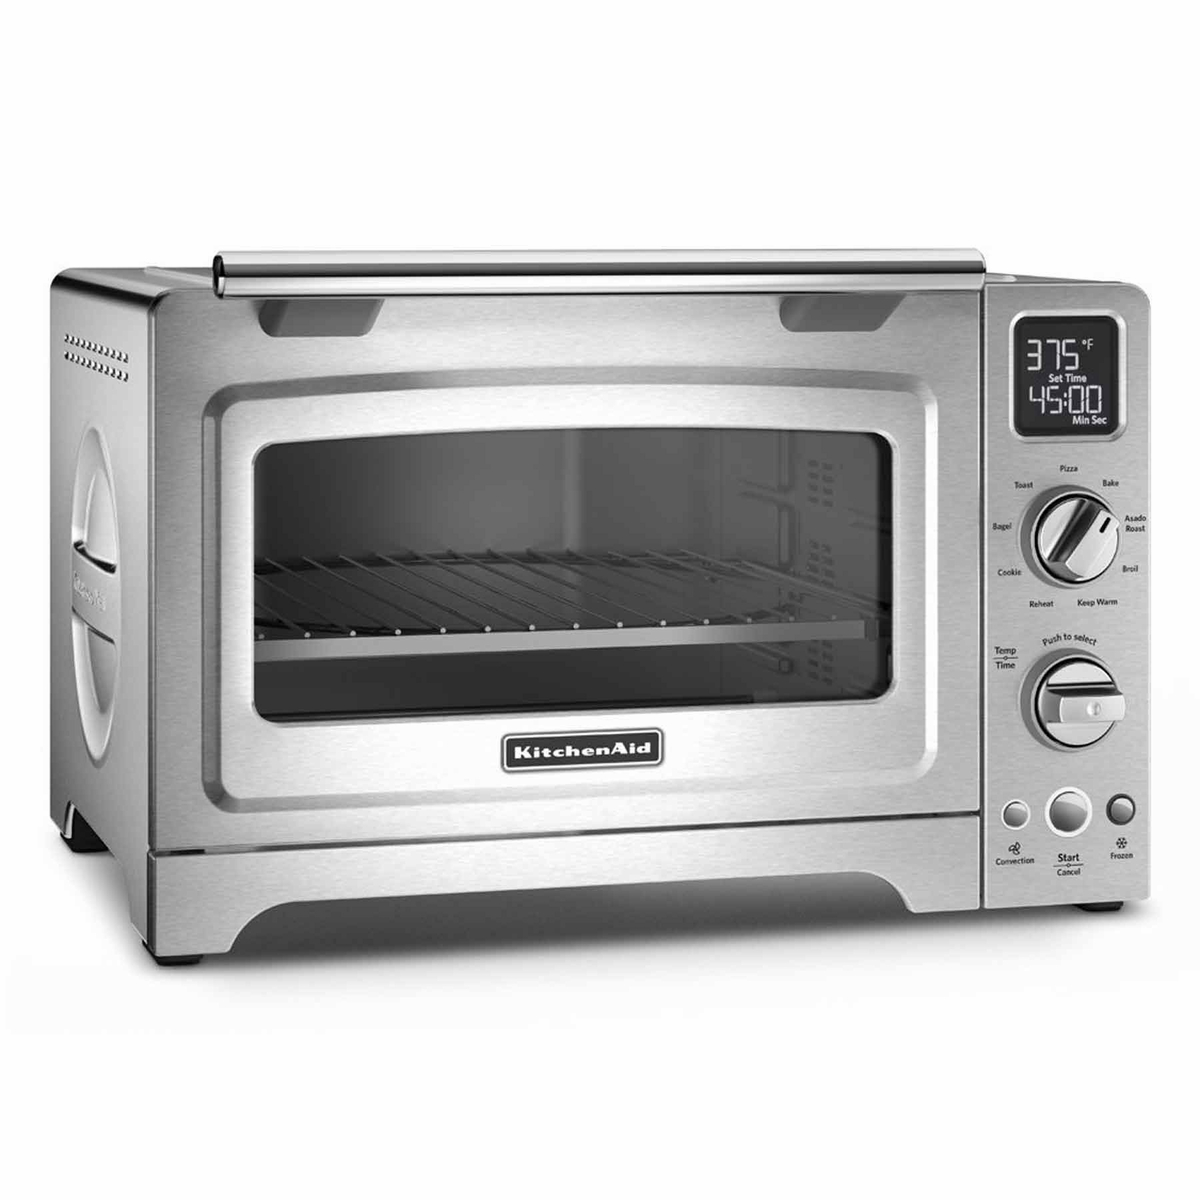 Convection Countertop Oven Stainless Steel : ... KCO275SS 1800 Watt Countertop Digital Convection Oven, Stainless Steel